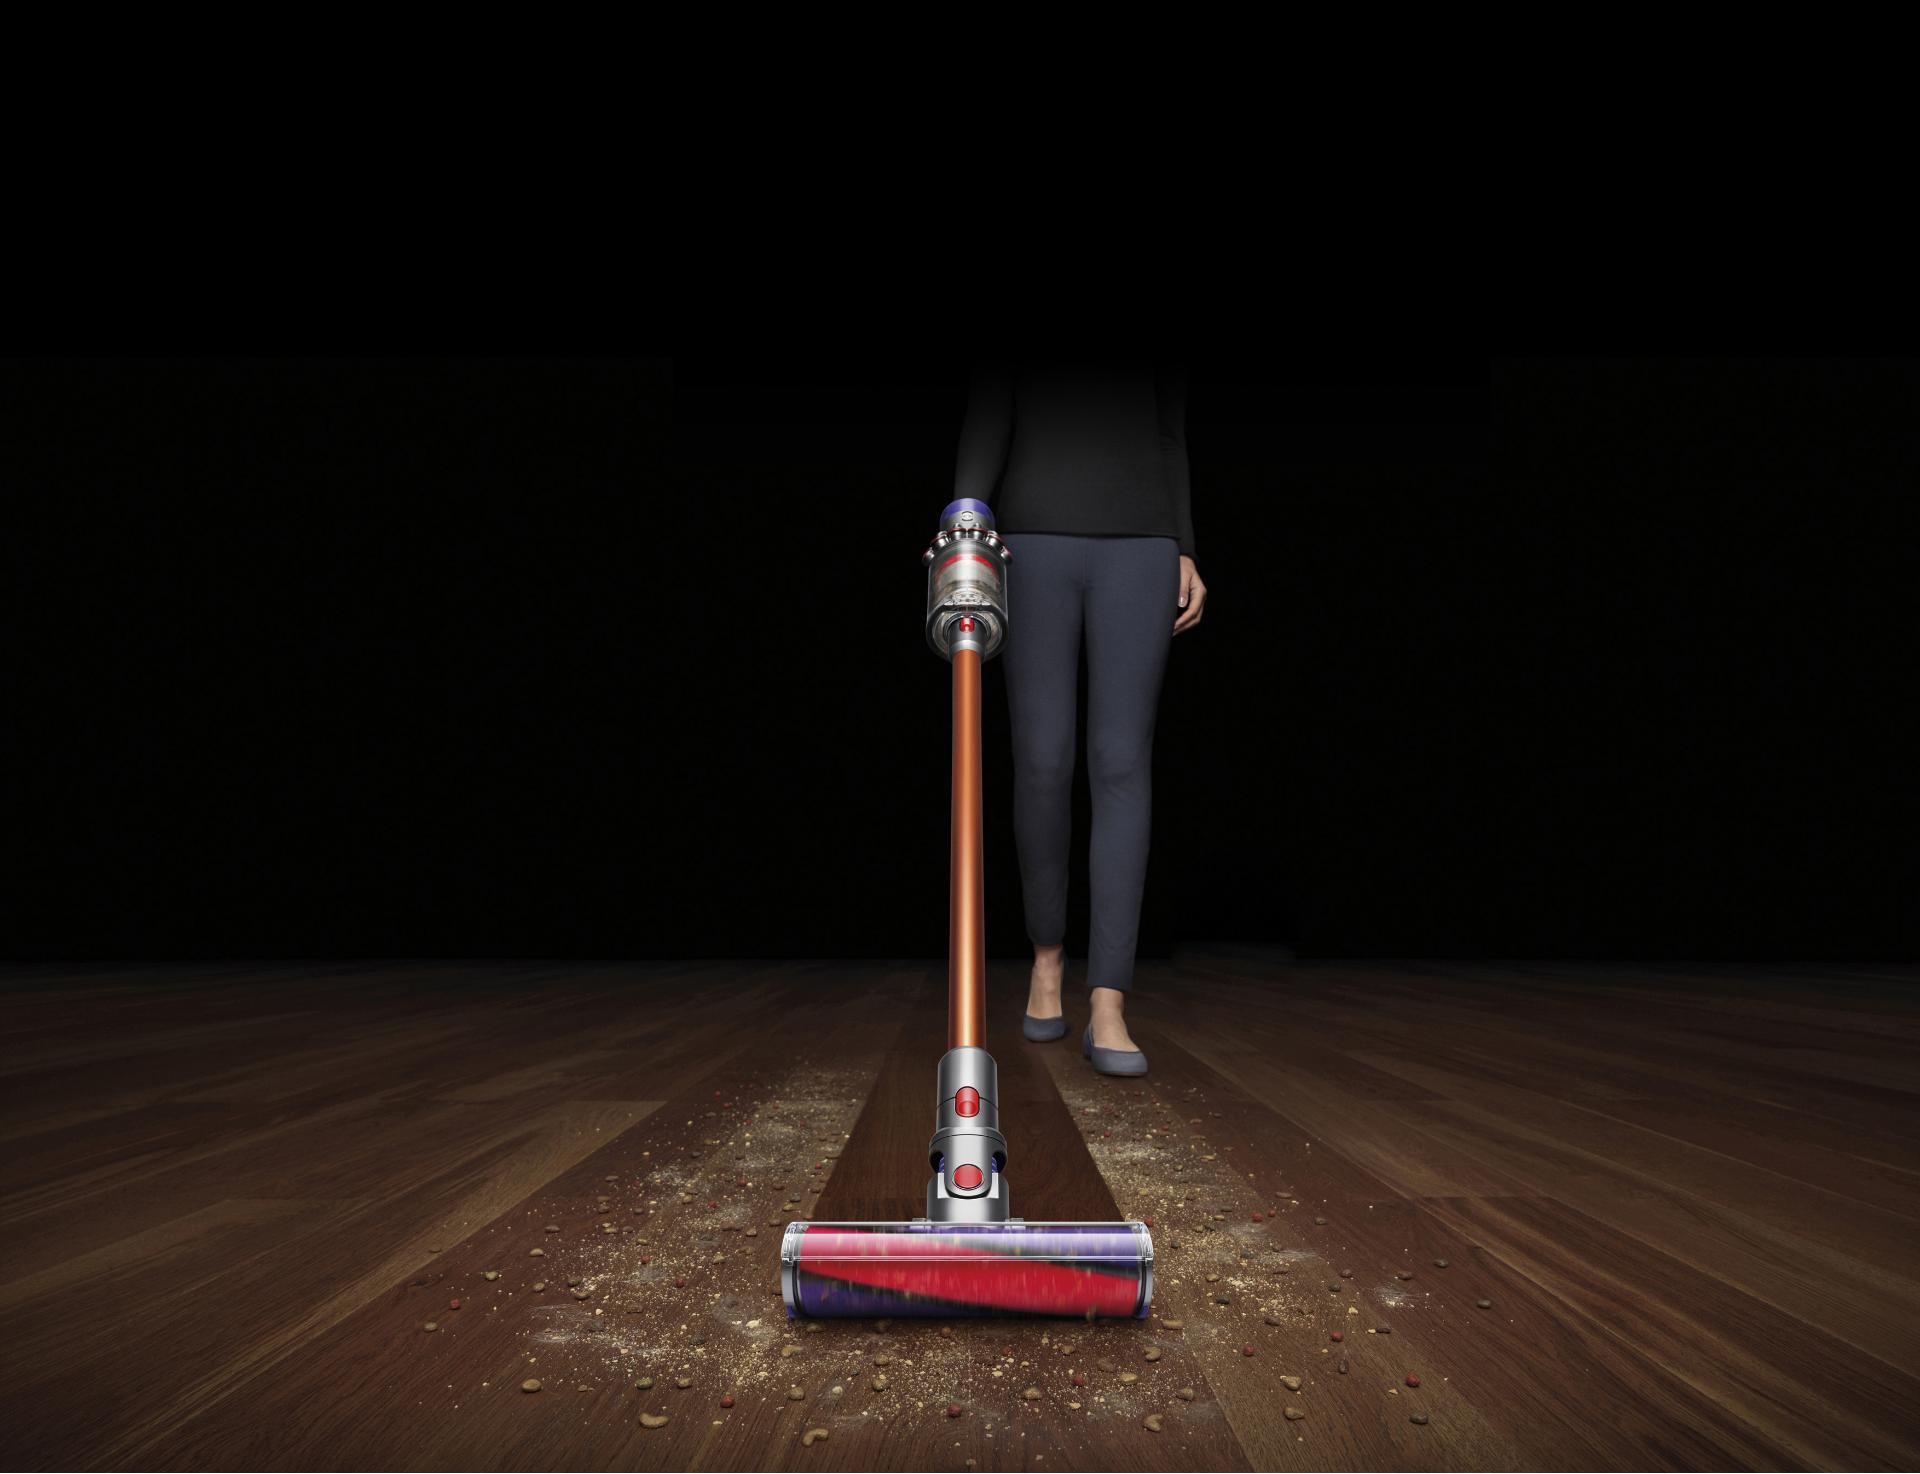 Woman using Dyson Cyclone V10 cord-free vacuum to pick up debris from hard floor